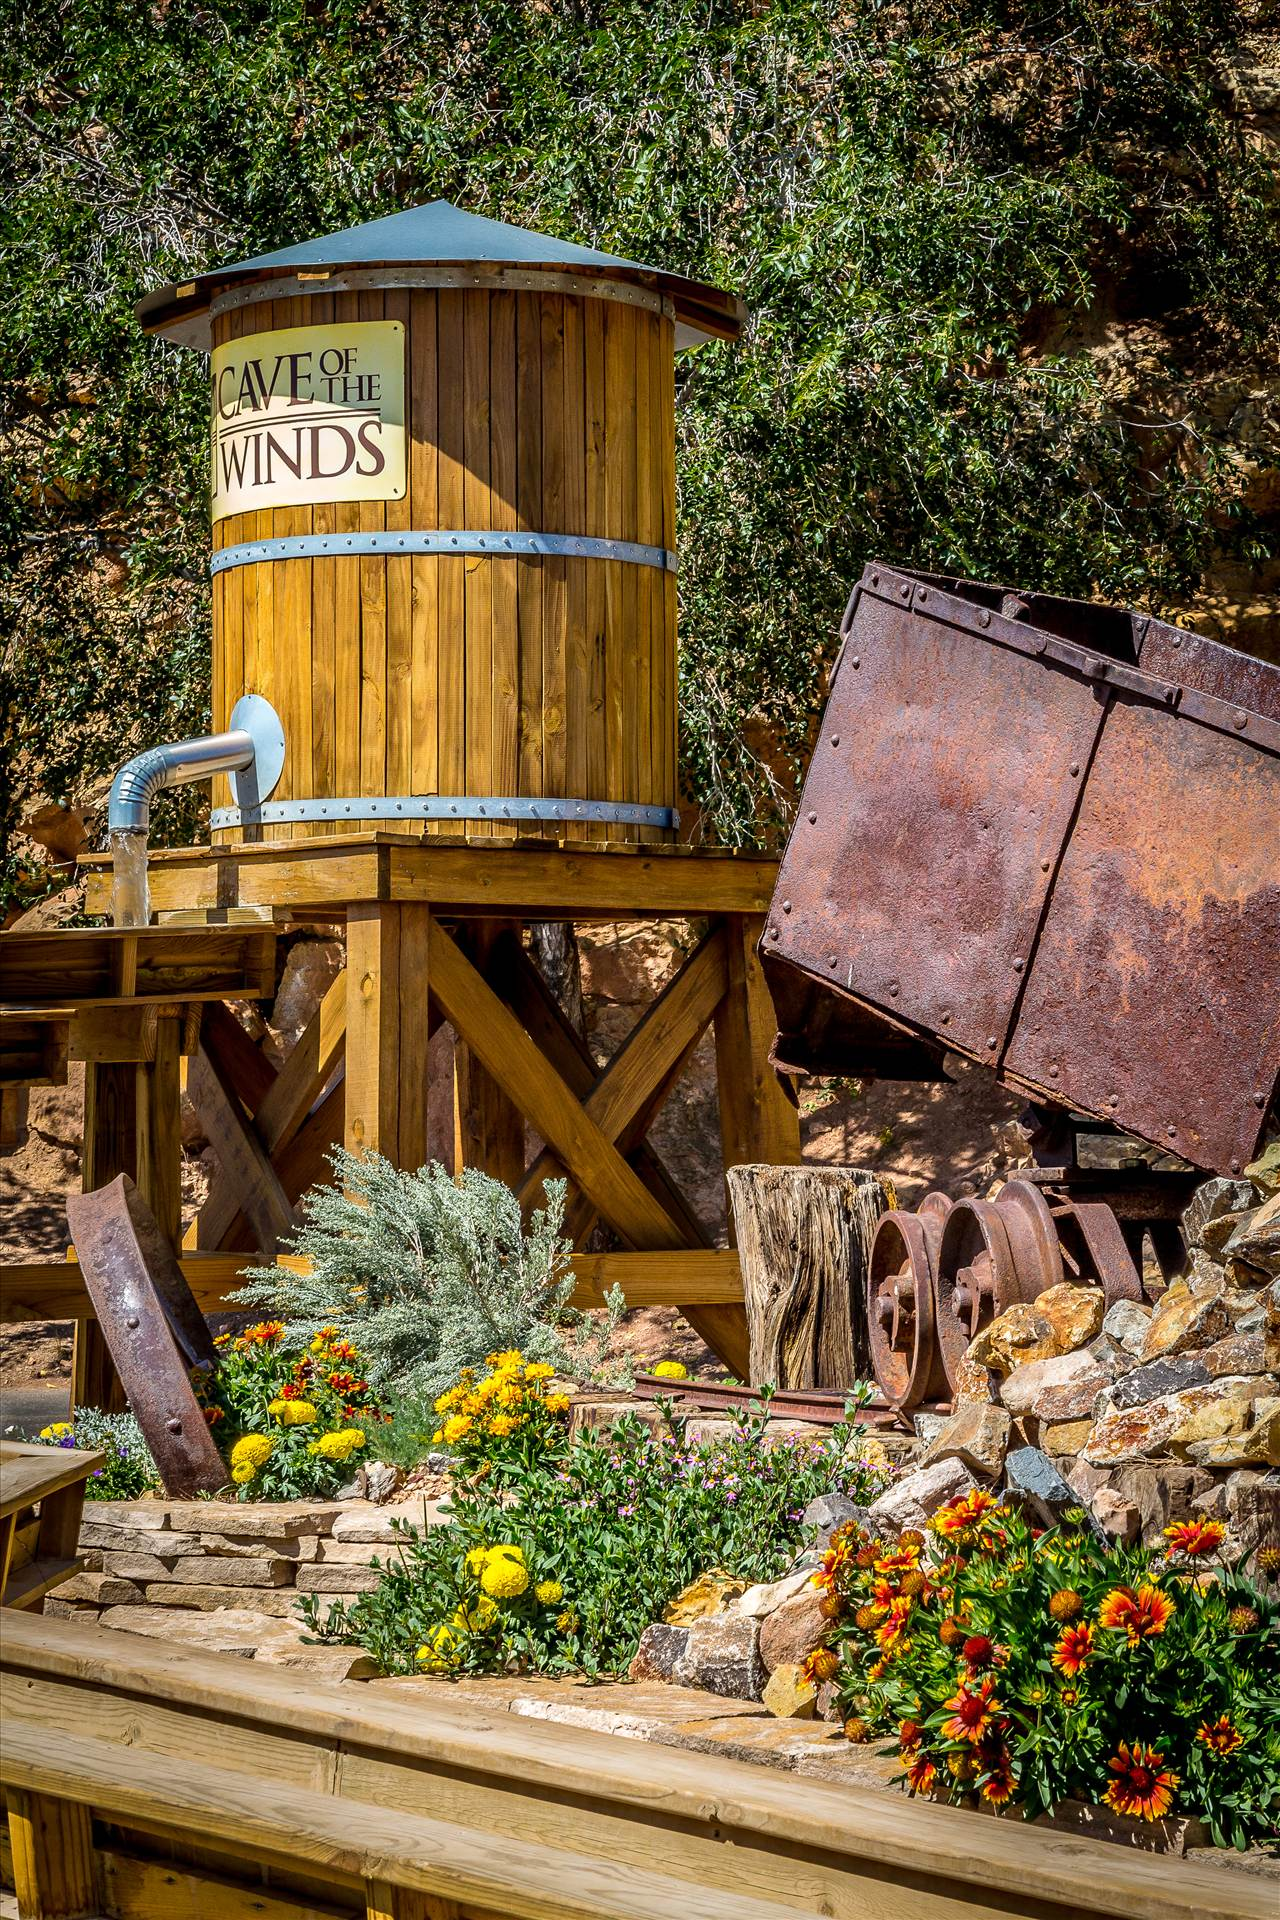 Cave of the Winds Display - A rustic display outside the entrance to the Cave of the Winds in Manitou, Colorado. by D Scott Smith